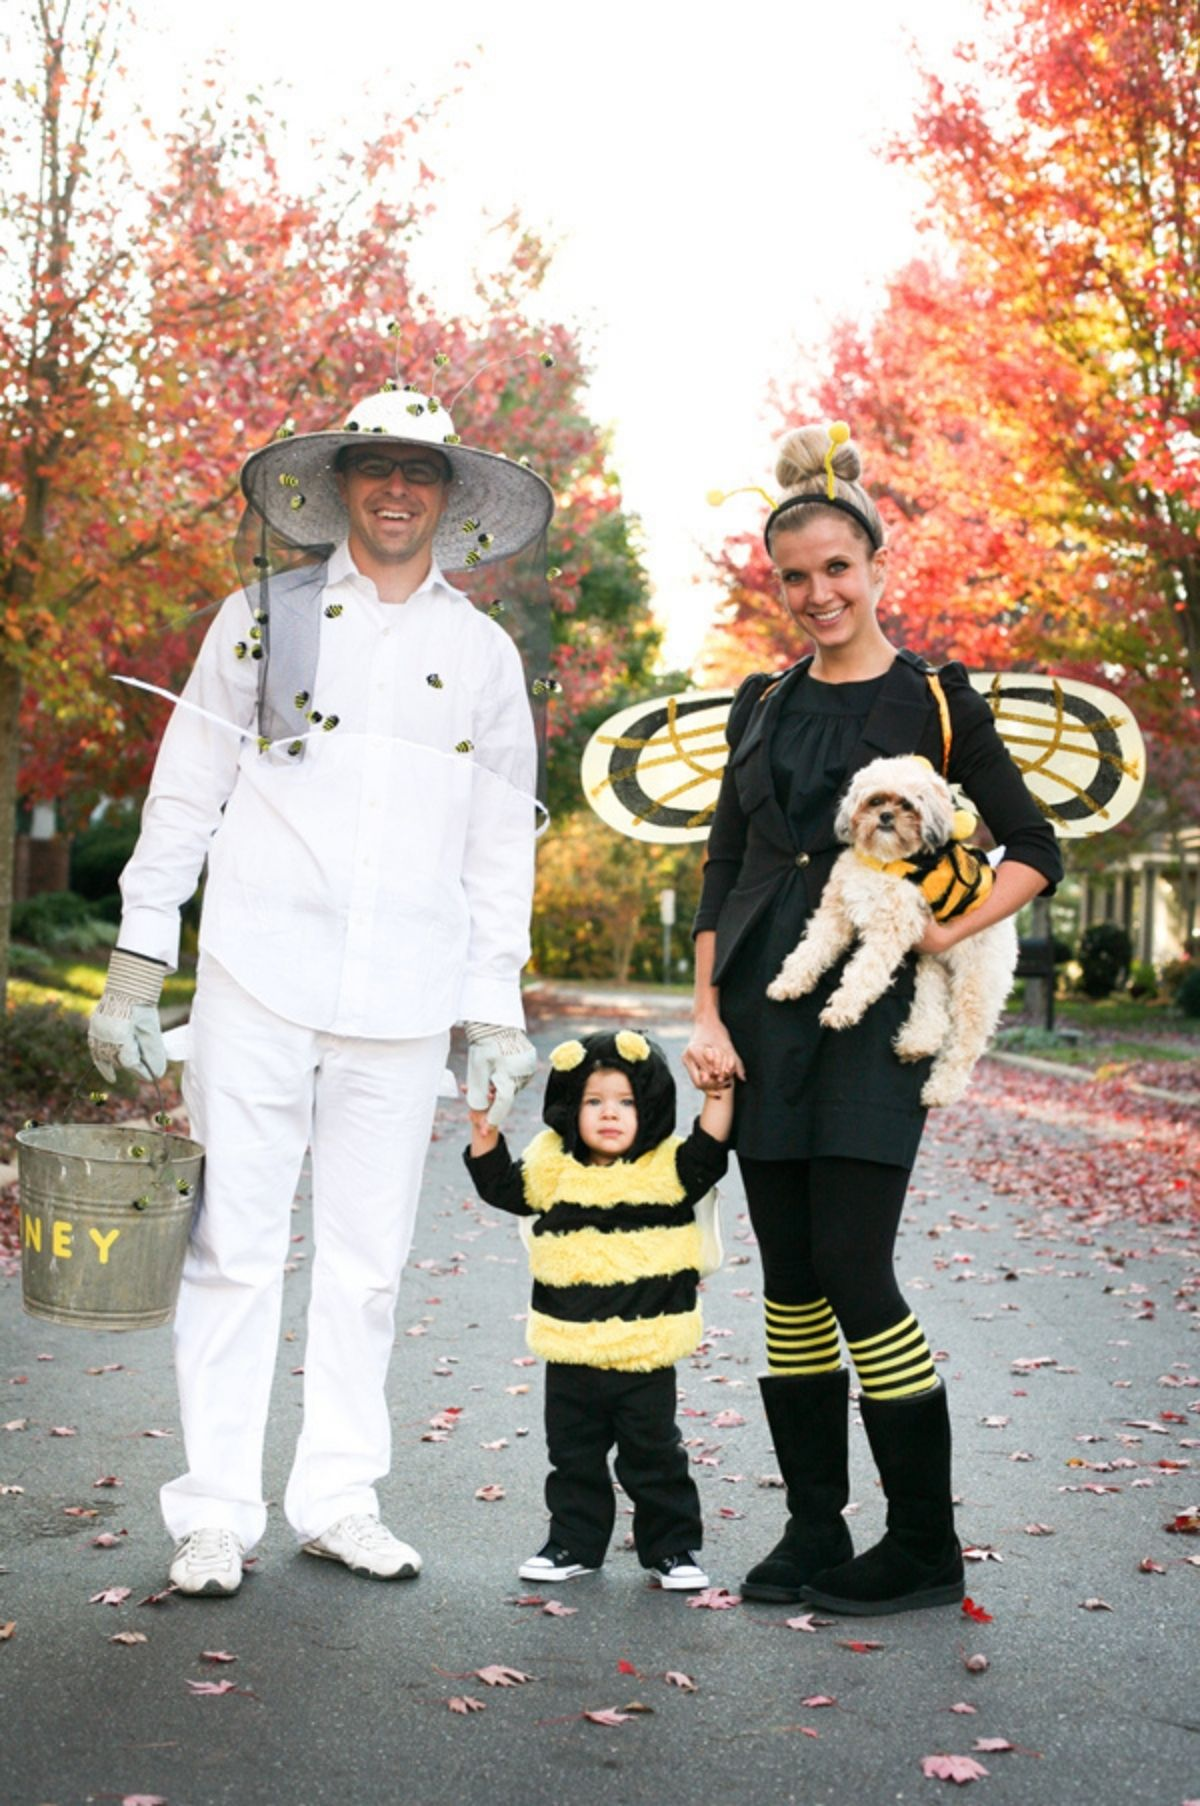 Bee and beekeeper costumes